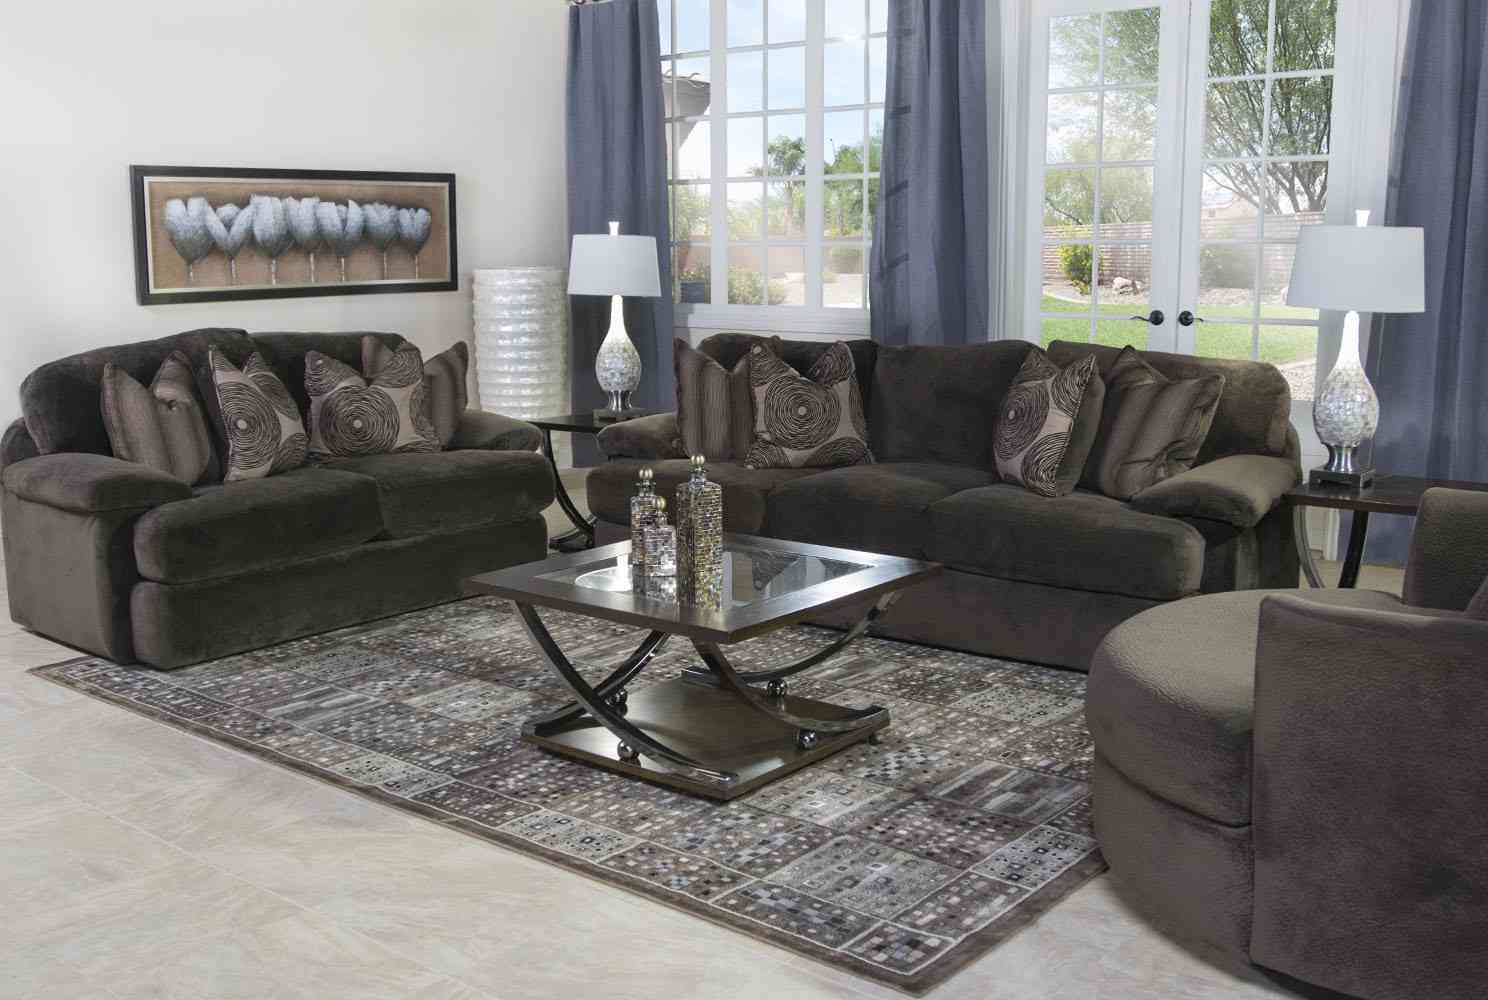 mor furniture living room sets roy home design 19304 | mor furniture living room sets 10